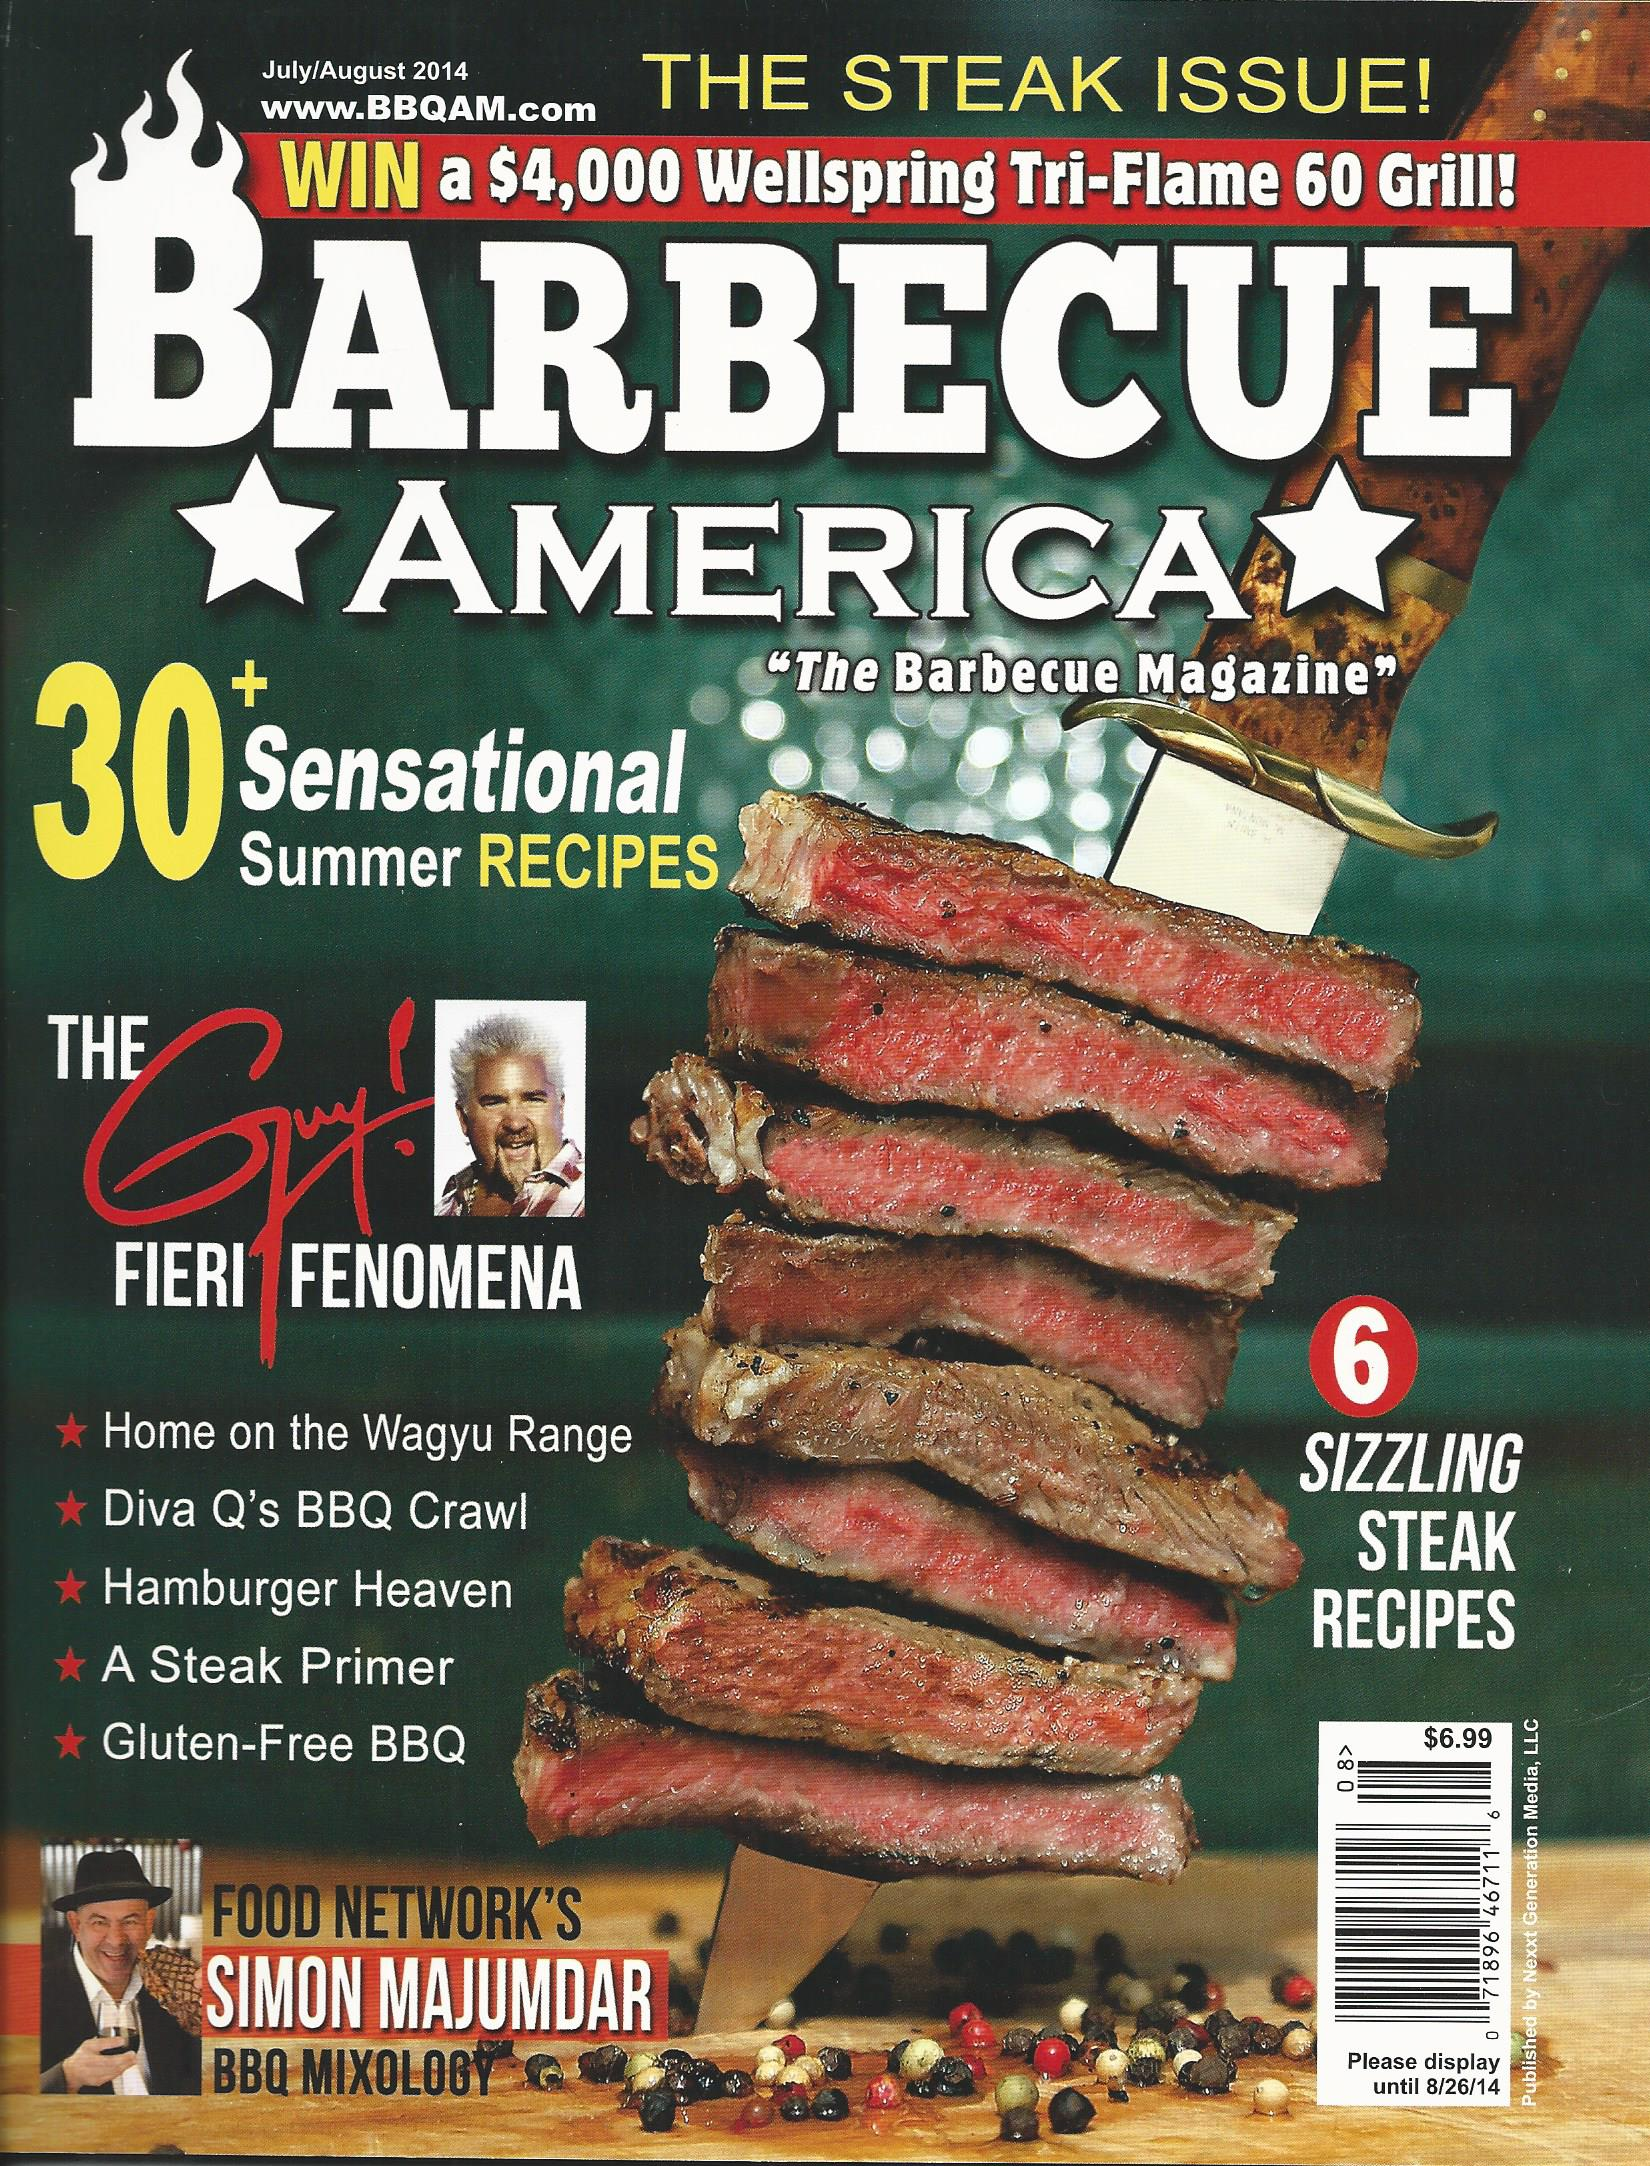 barbecue-magazine0001.jpg